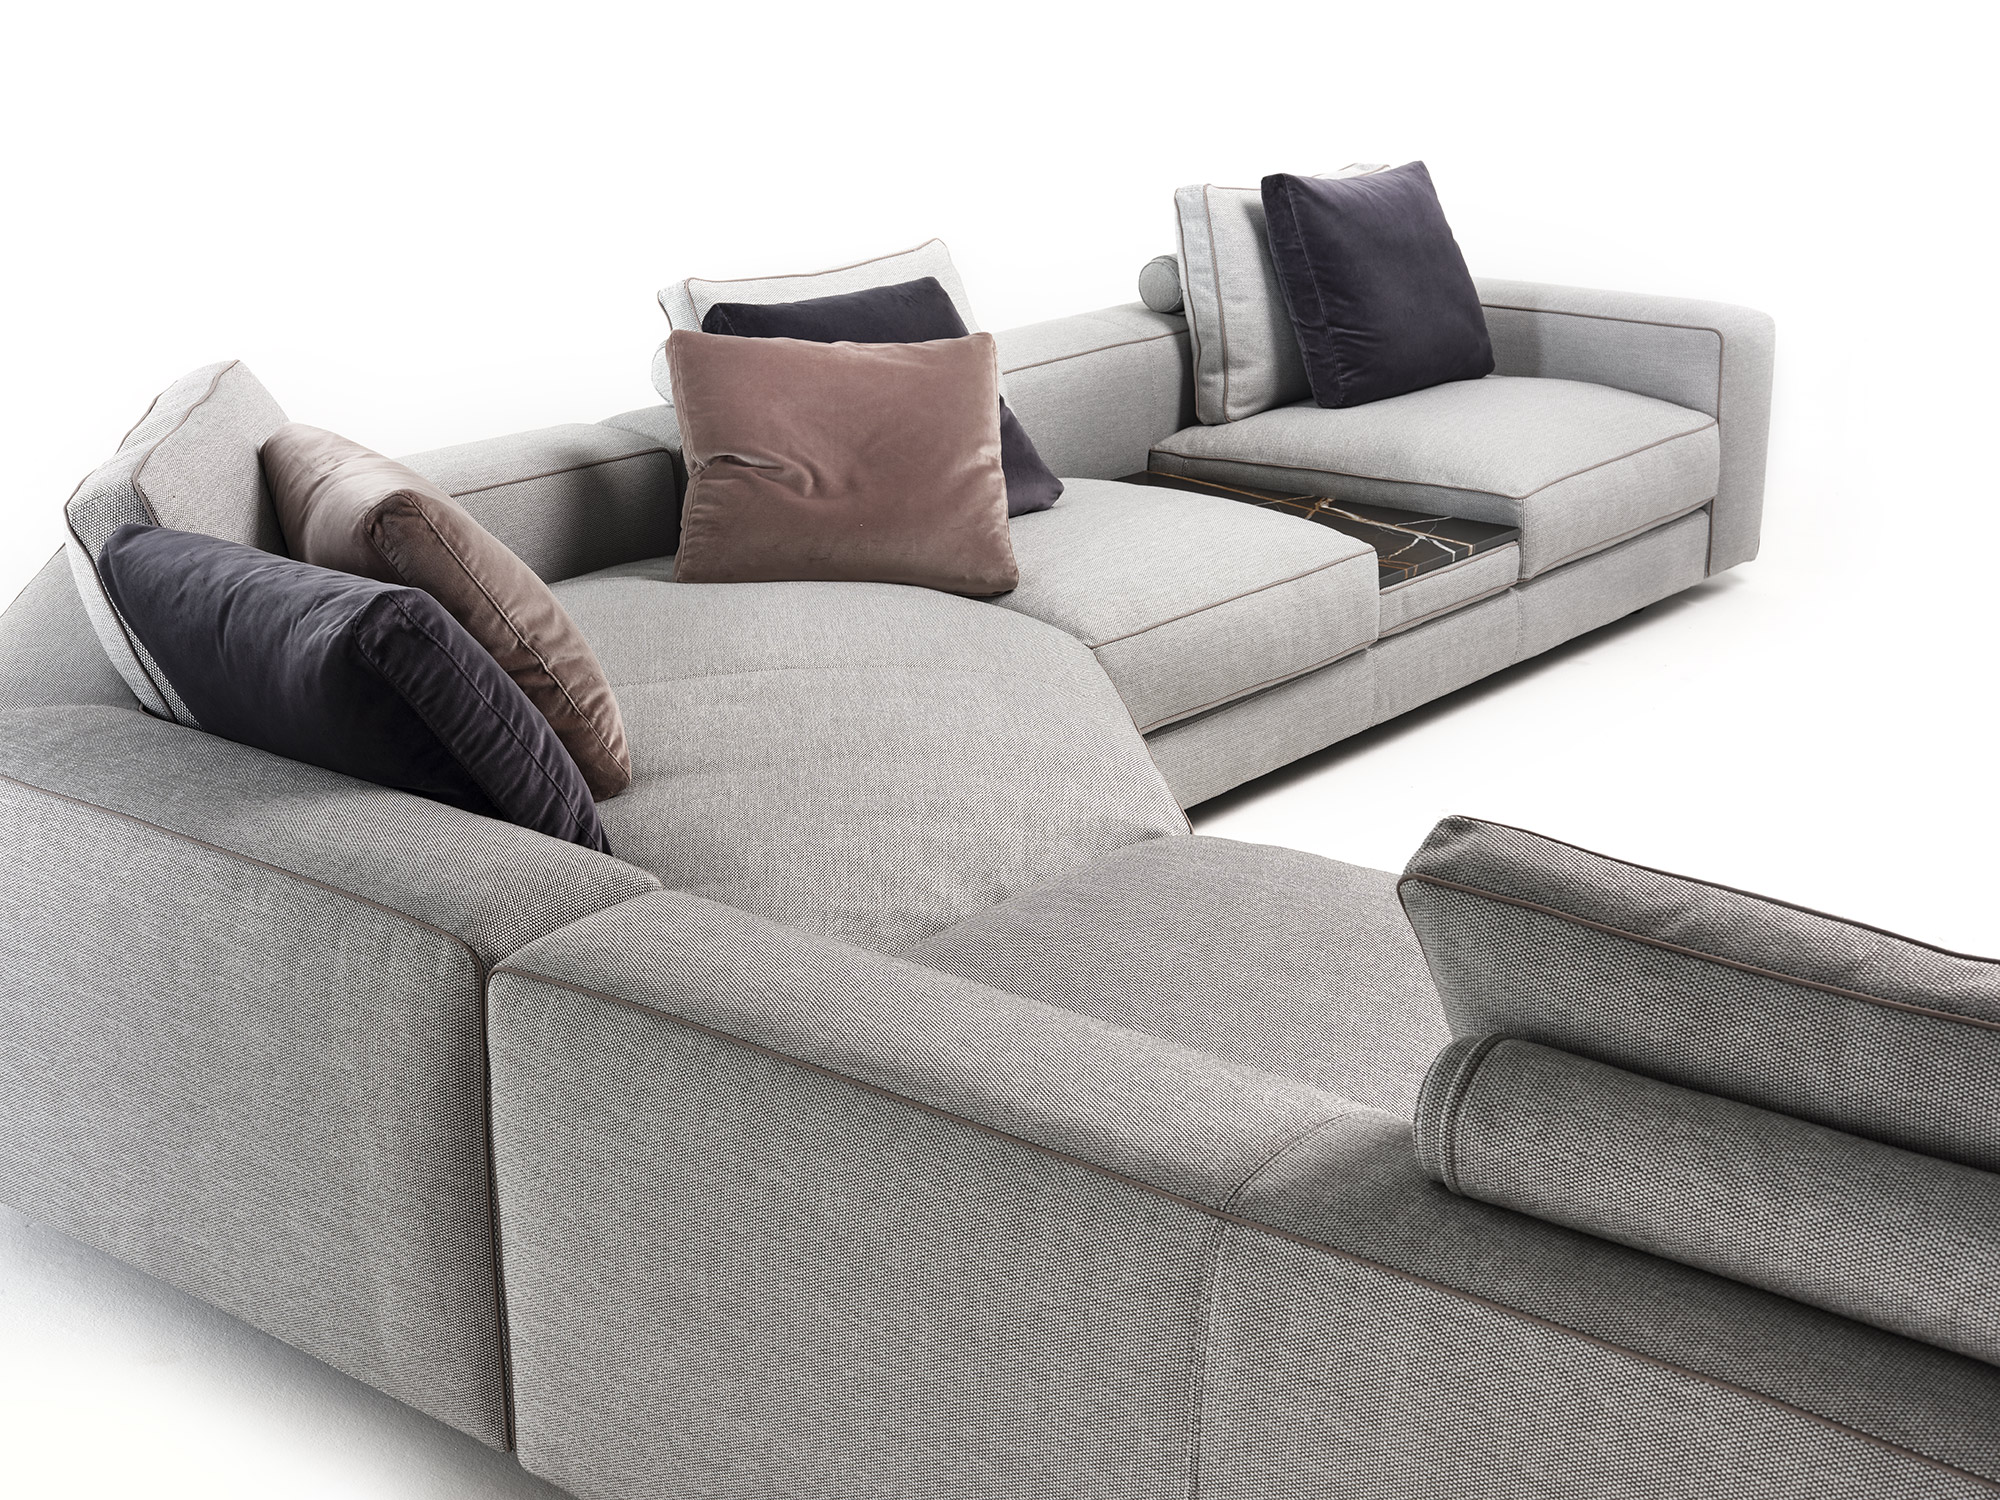 Mussi Sinfonia sectional sofa back